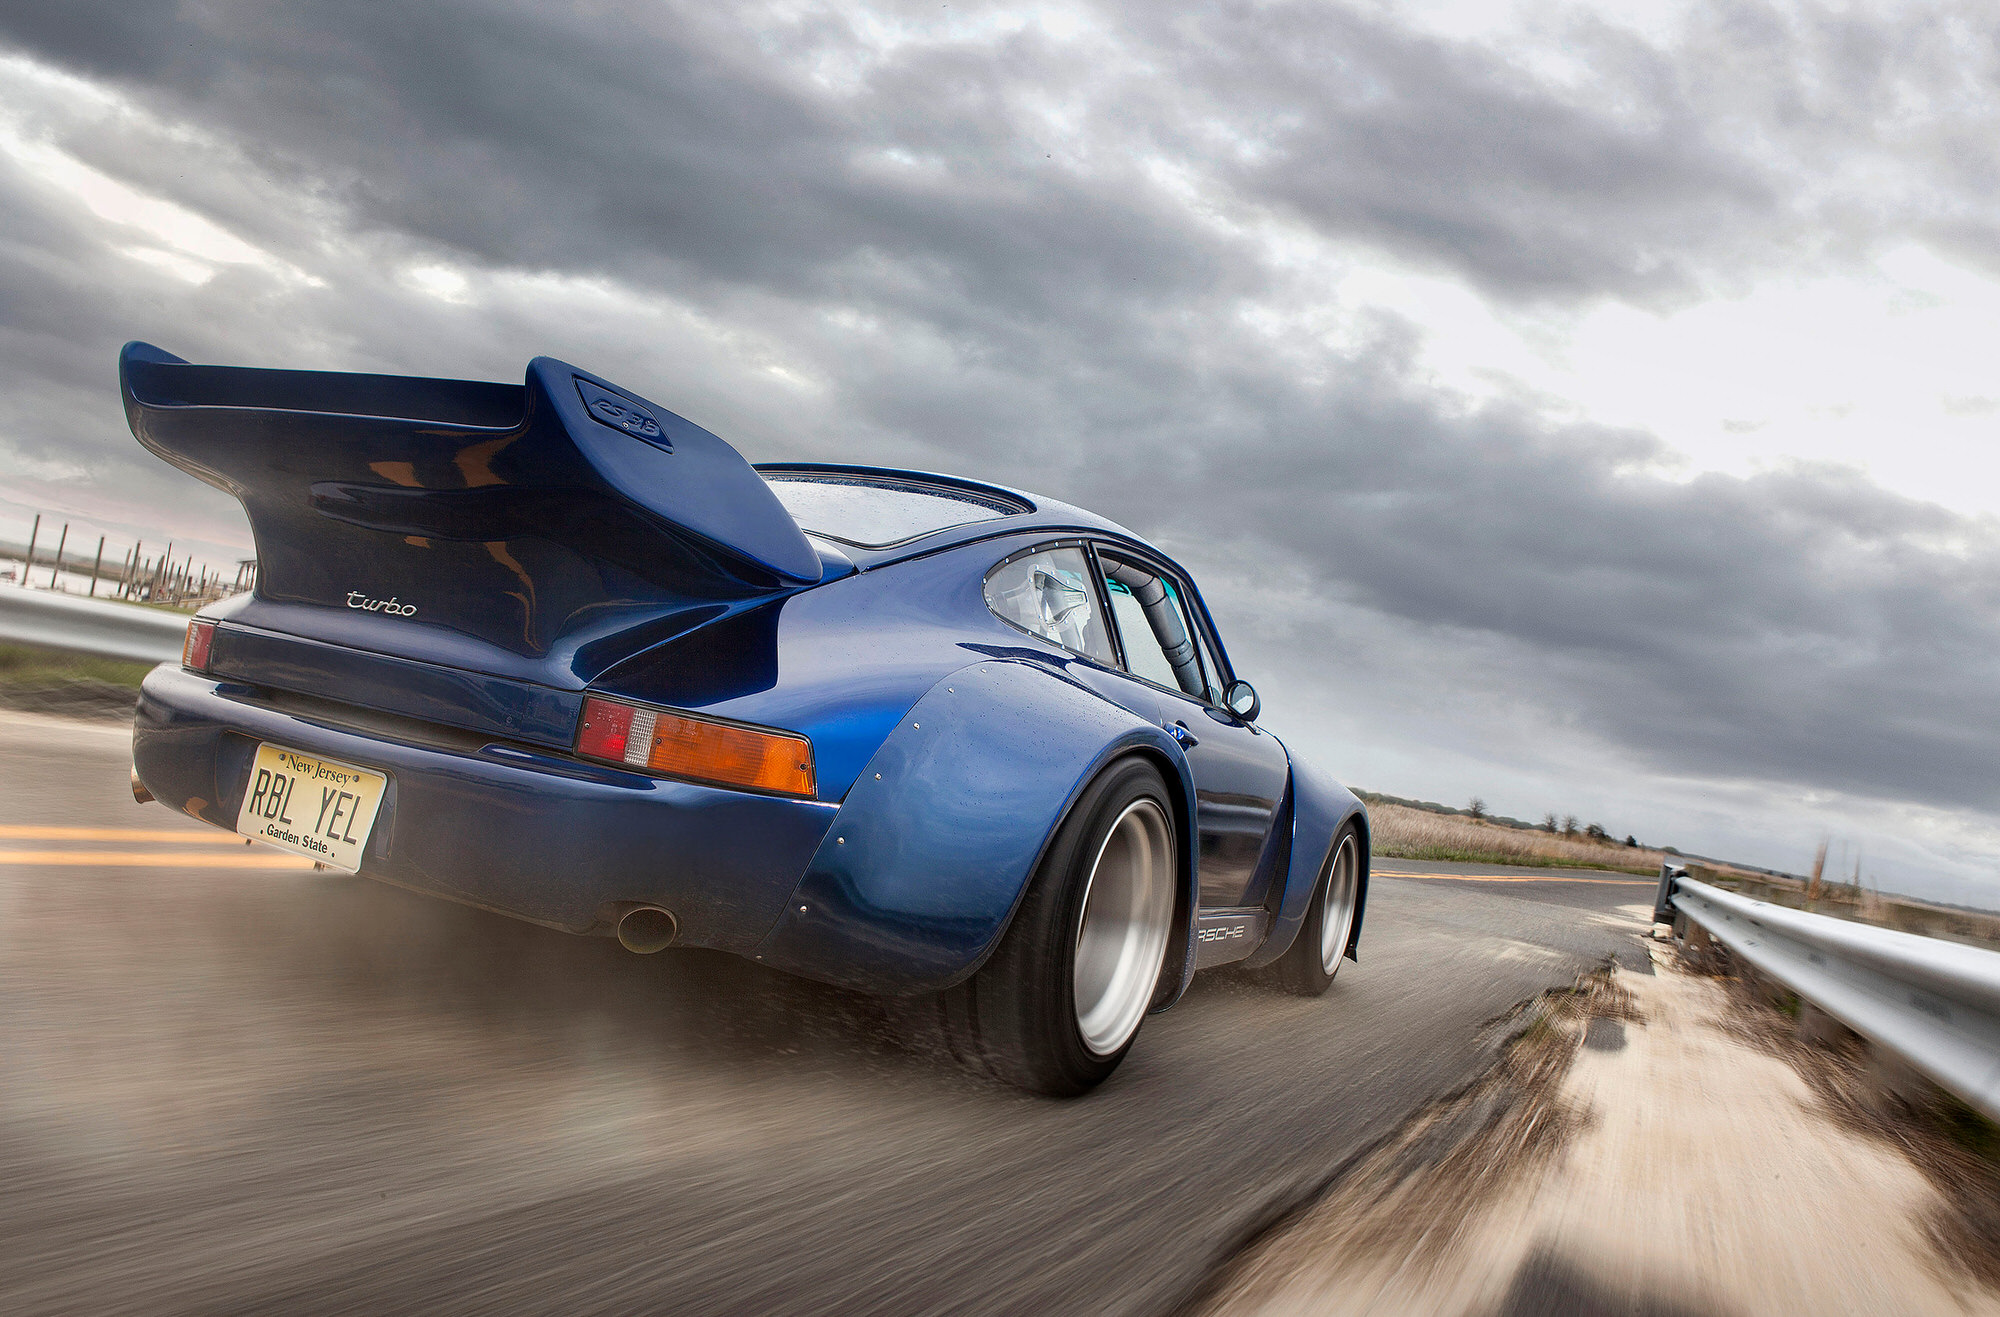 Widebody slantnose 935-inspired blue Porsche 930